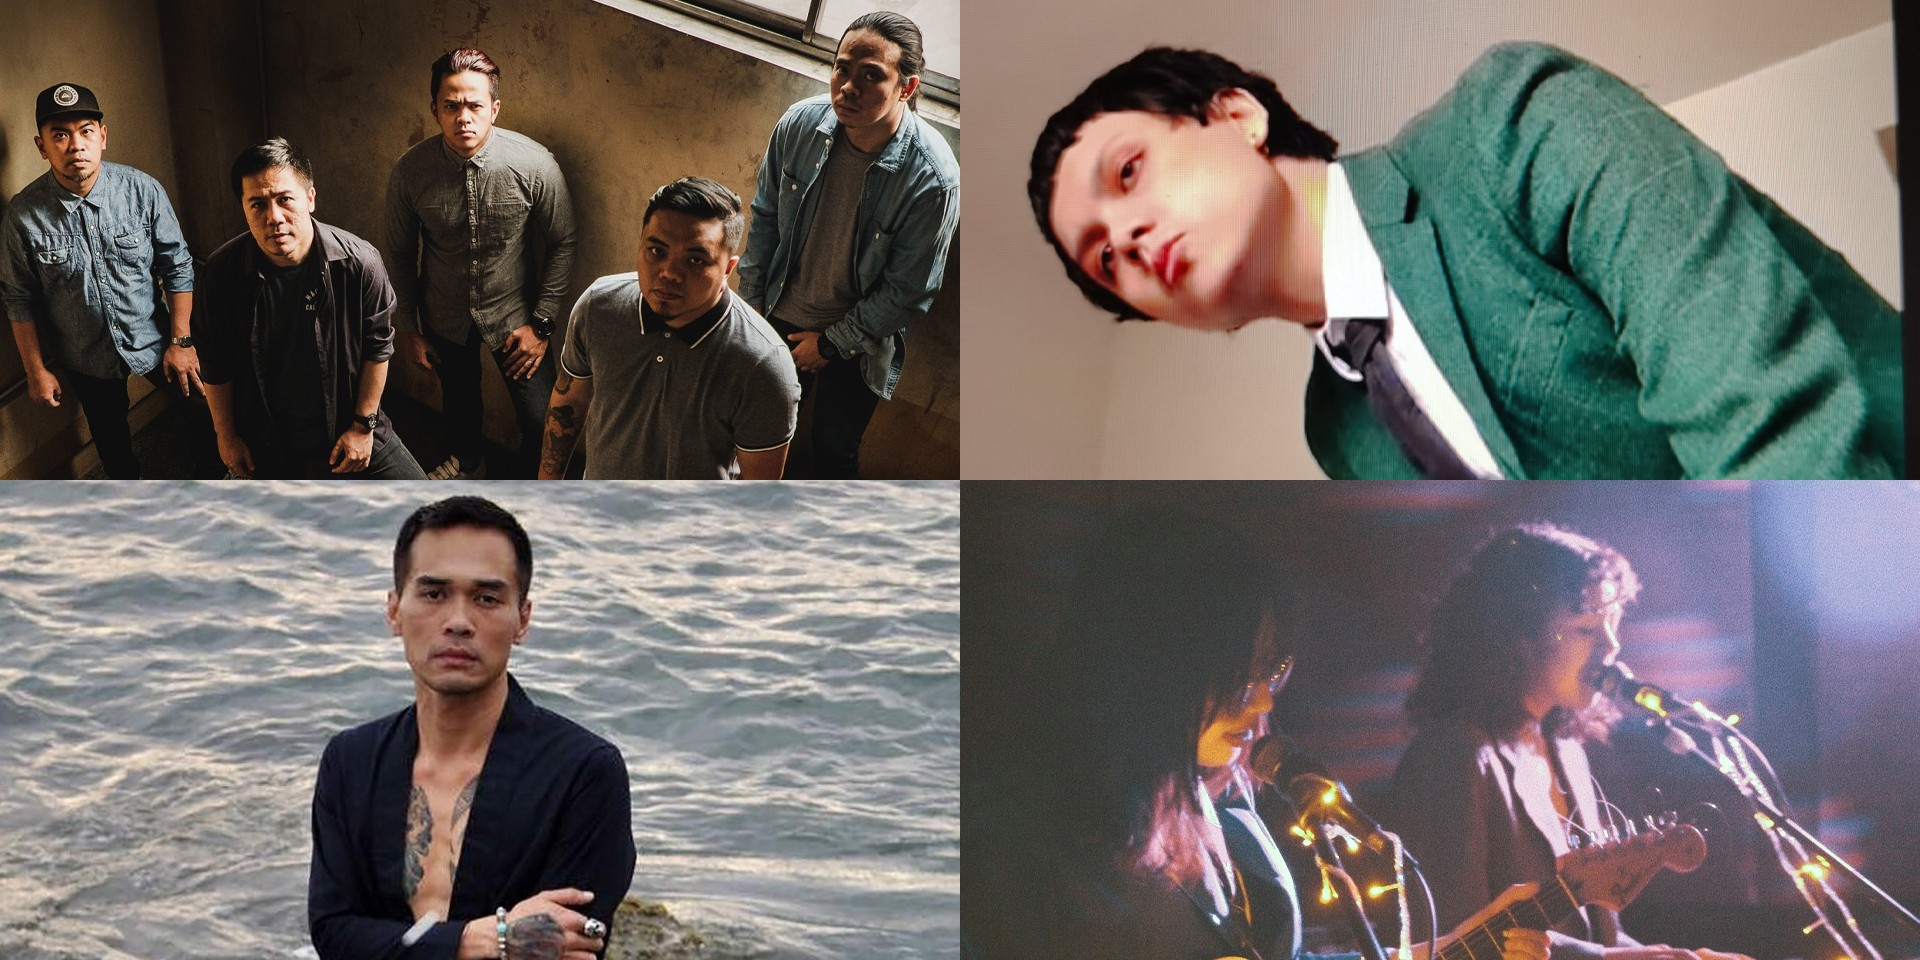 Imbue No Kudos, Zild, Marc Abaya, Breakfast Clouds, and more release new music – listen